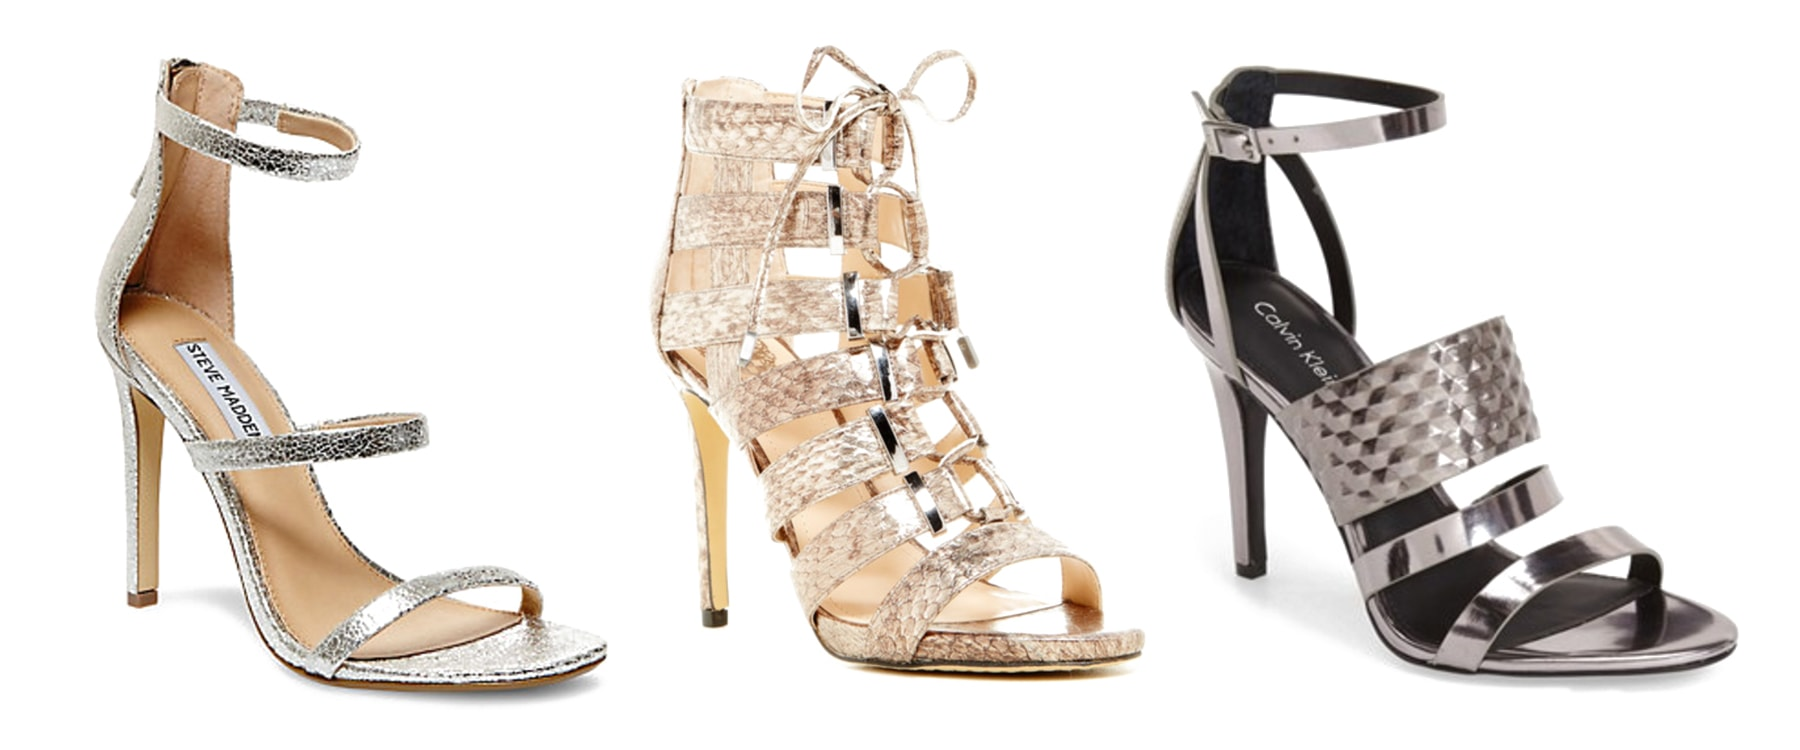 metallic shoes heels sandals